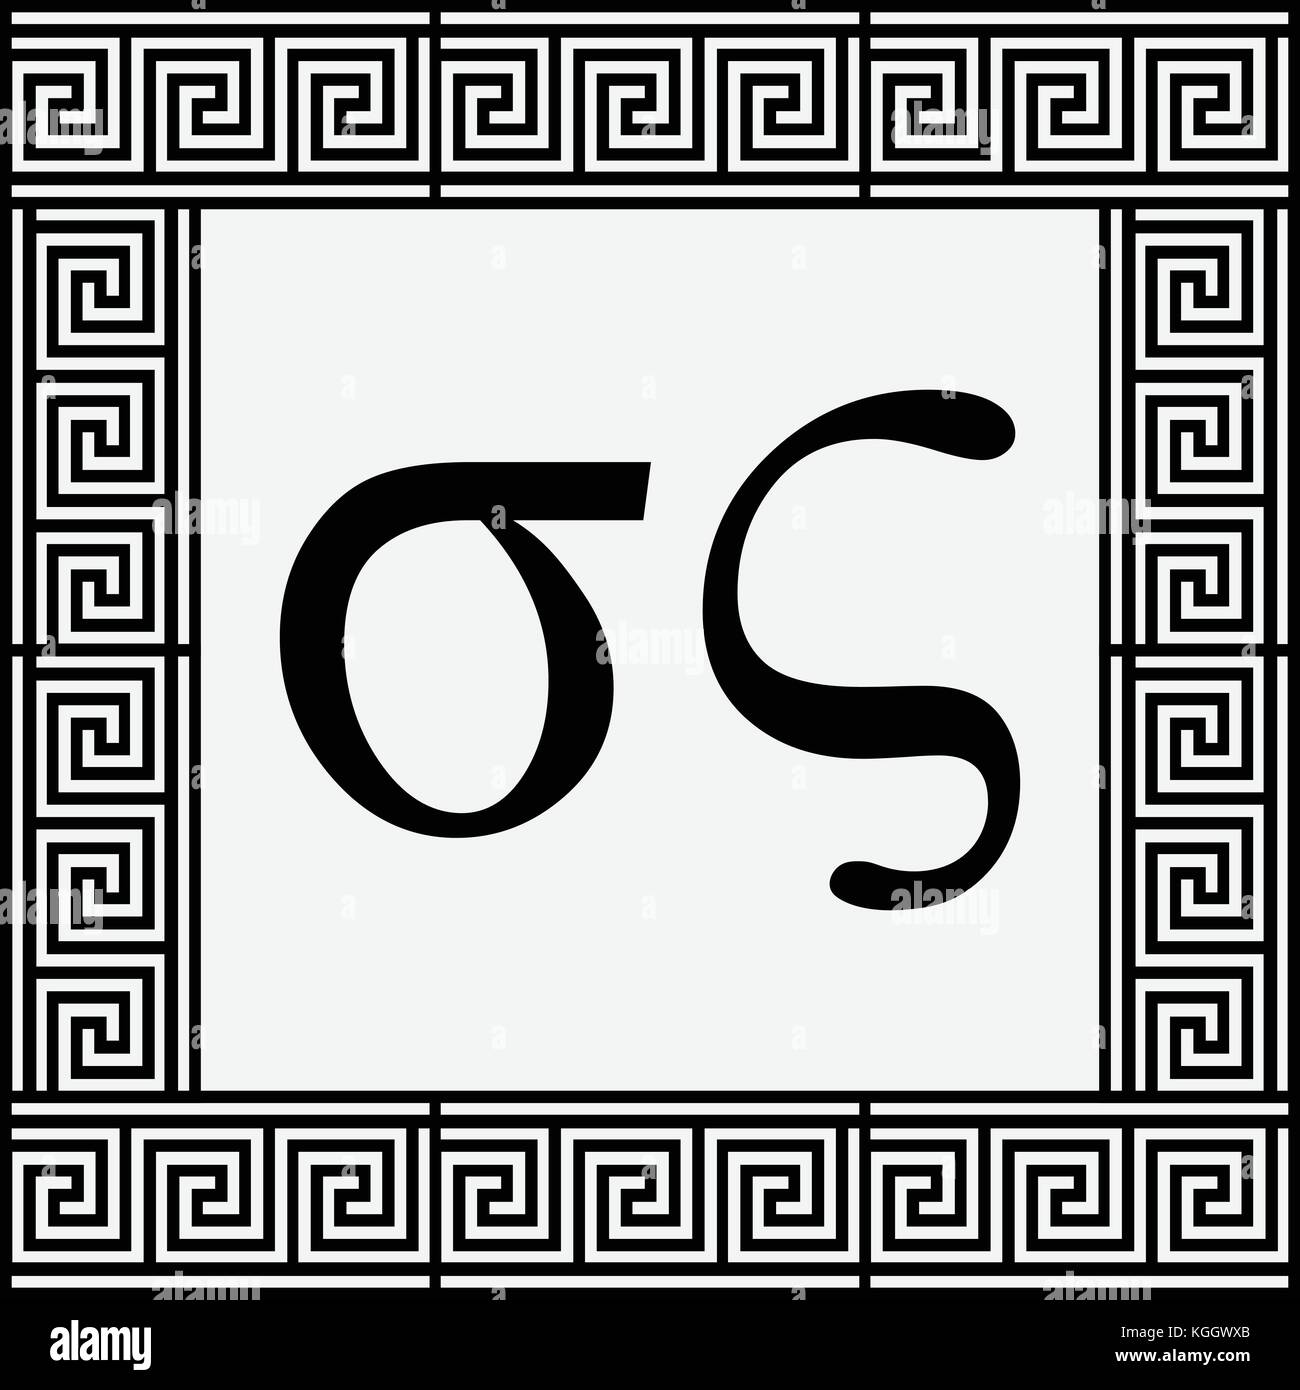 Math sigma symbol gallery symbol and sign ideas sigma symbol stock photos sigma symbol stock images alamy sigma greek small letters icon sigma symbols buycottarizona